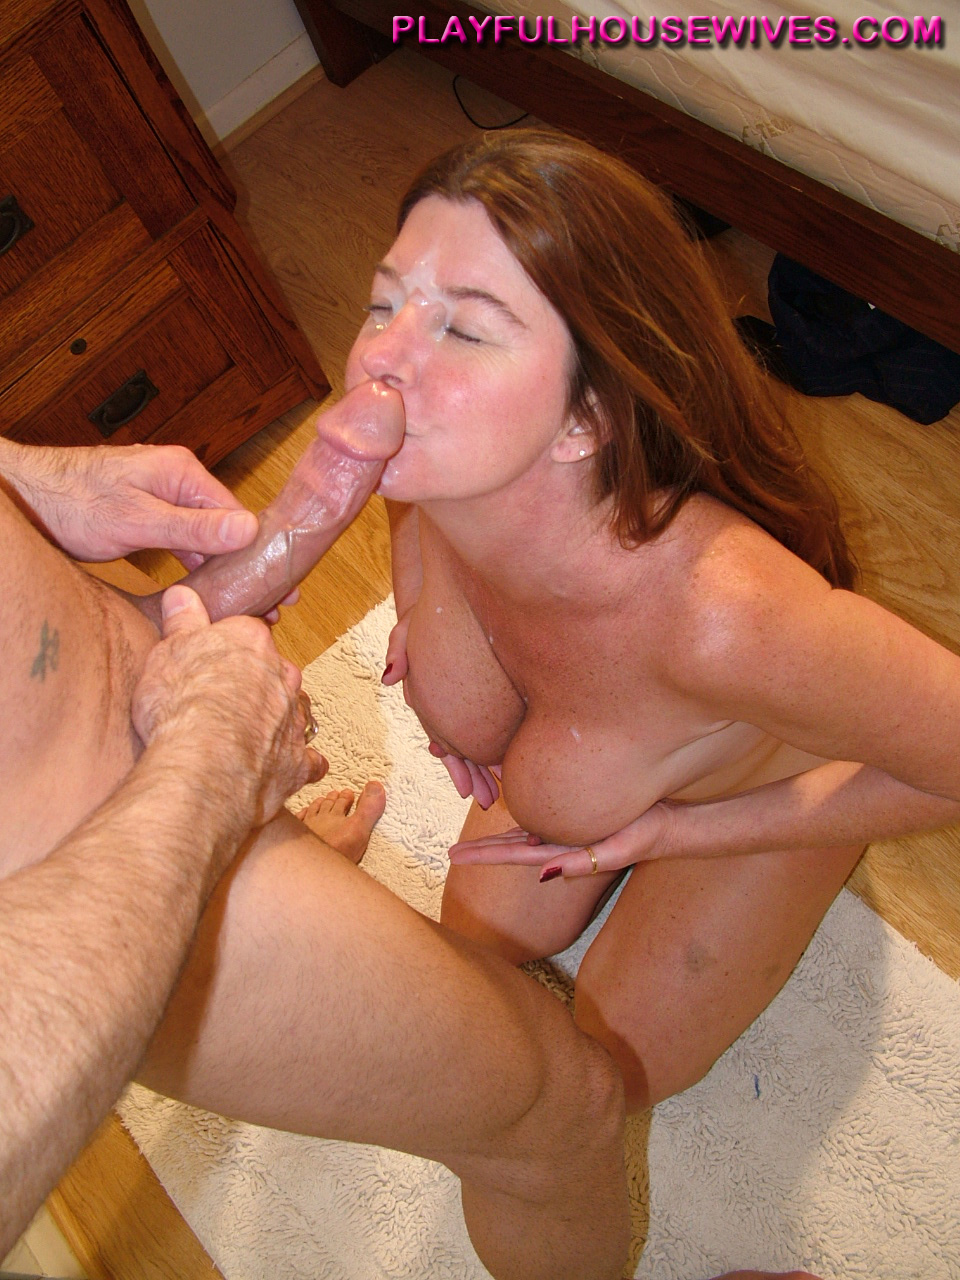 sex with brother wife big squirting boobs and big amateur thin couples free pics and galleries hardcore download porn